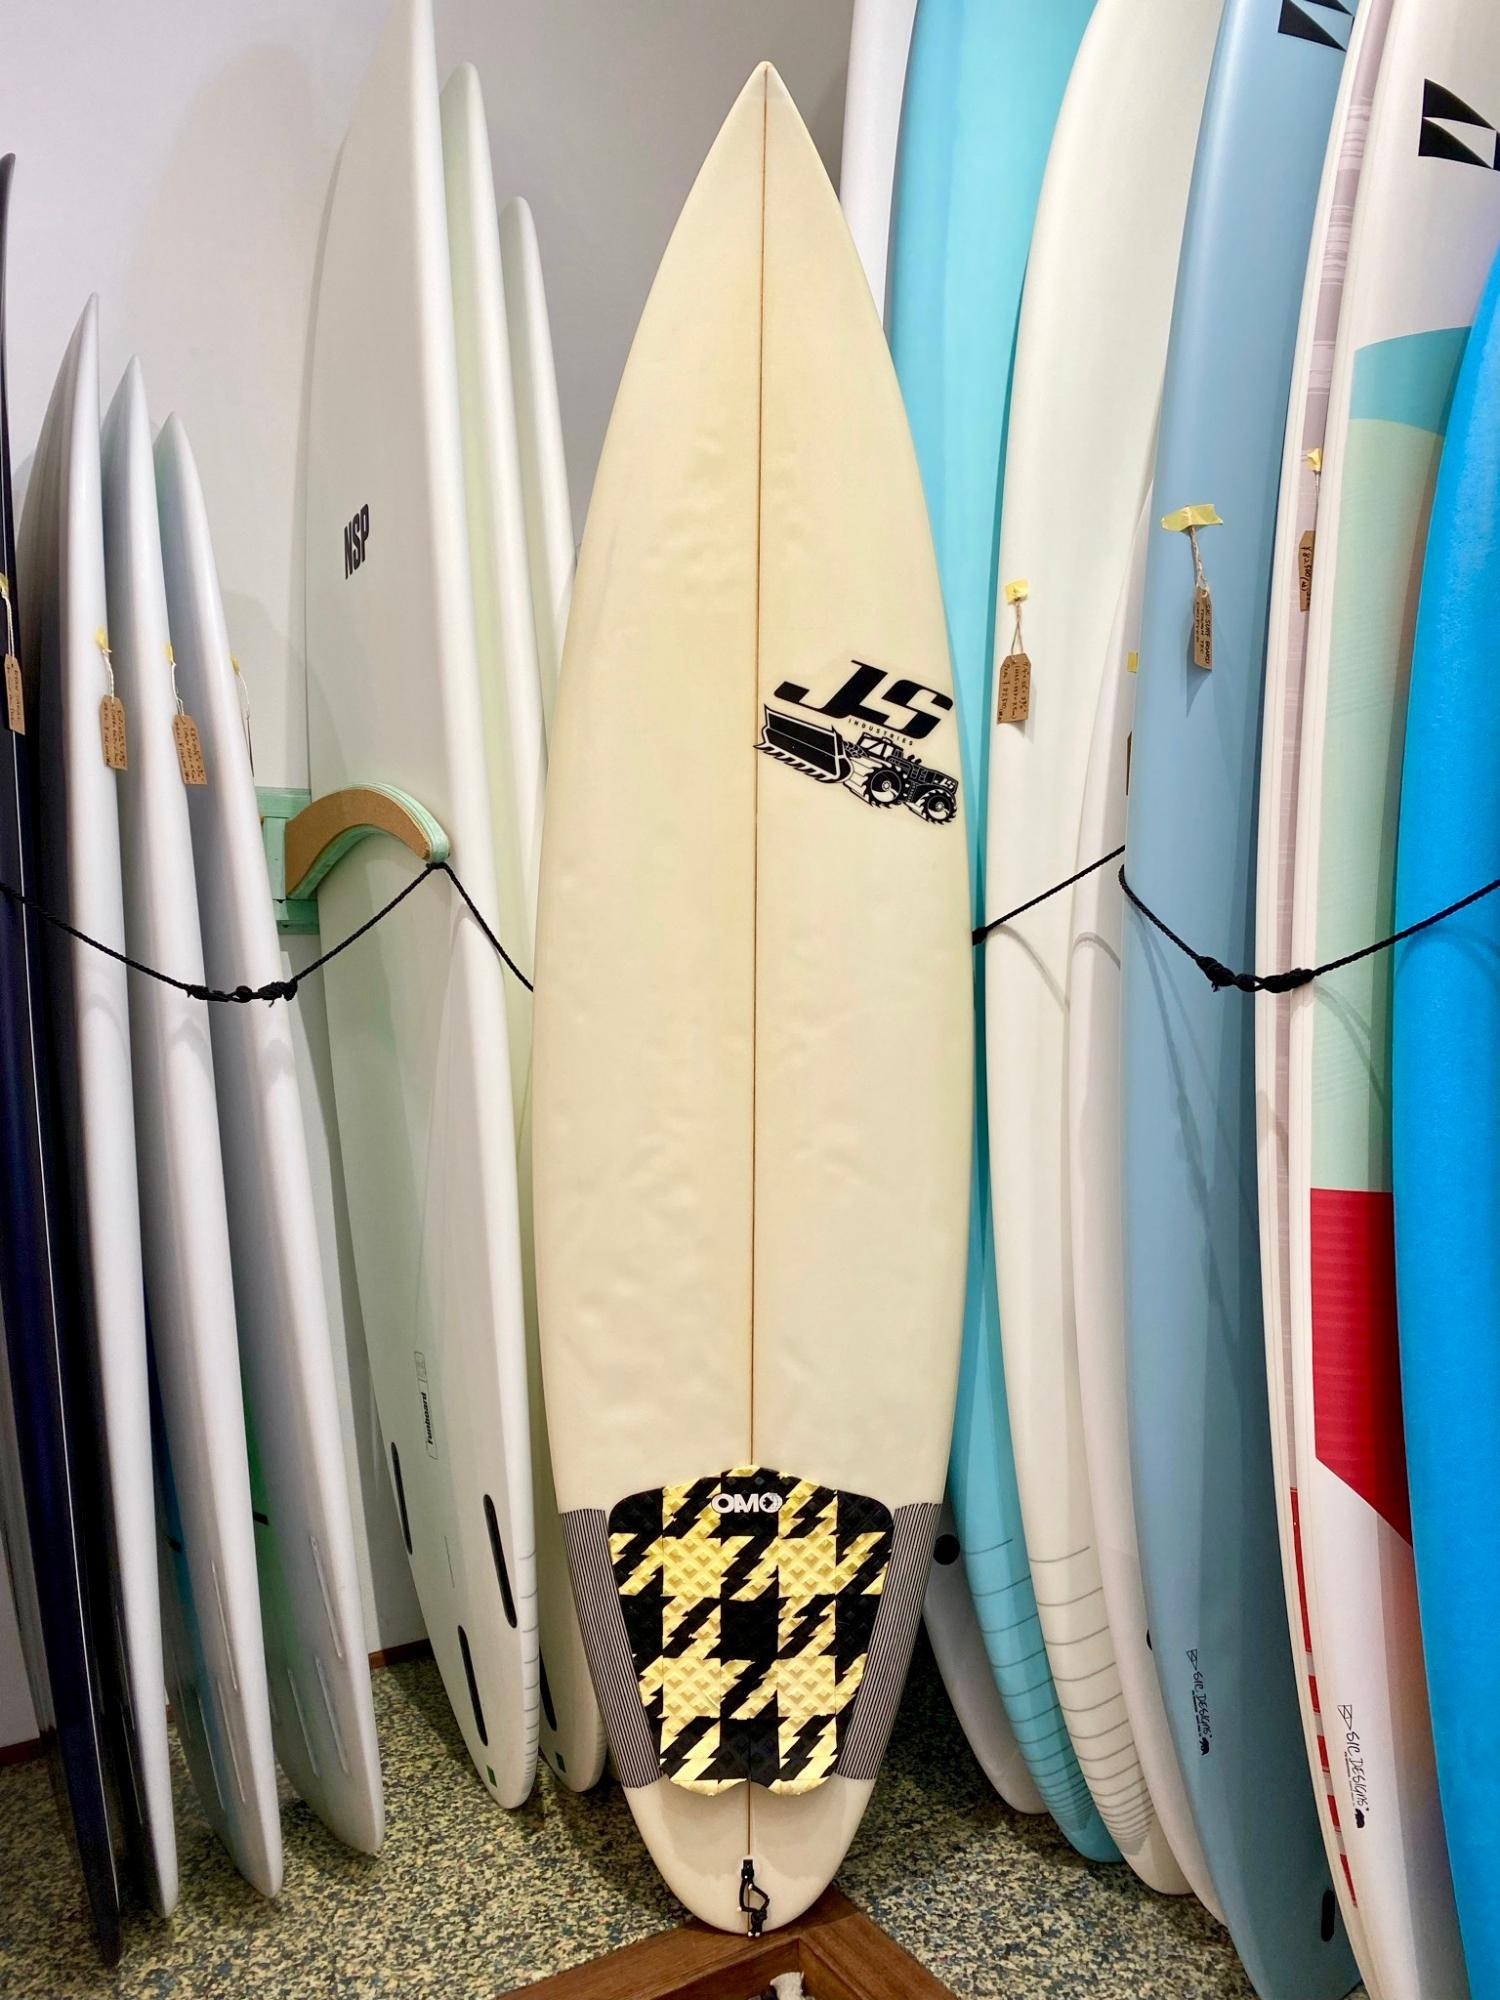 USED BOARDS (JS  PSYCHO NITRO 5.5)